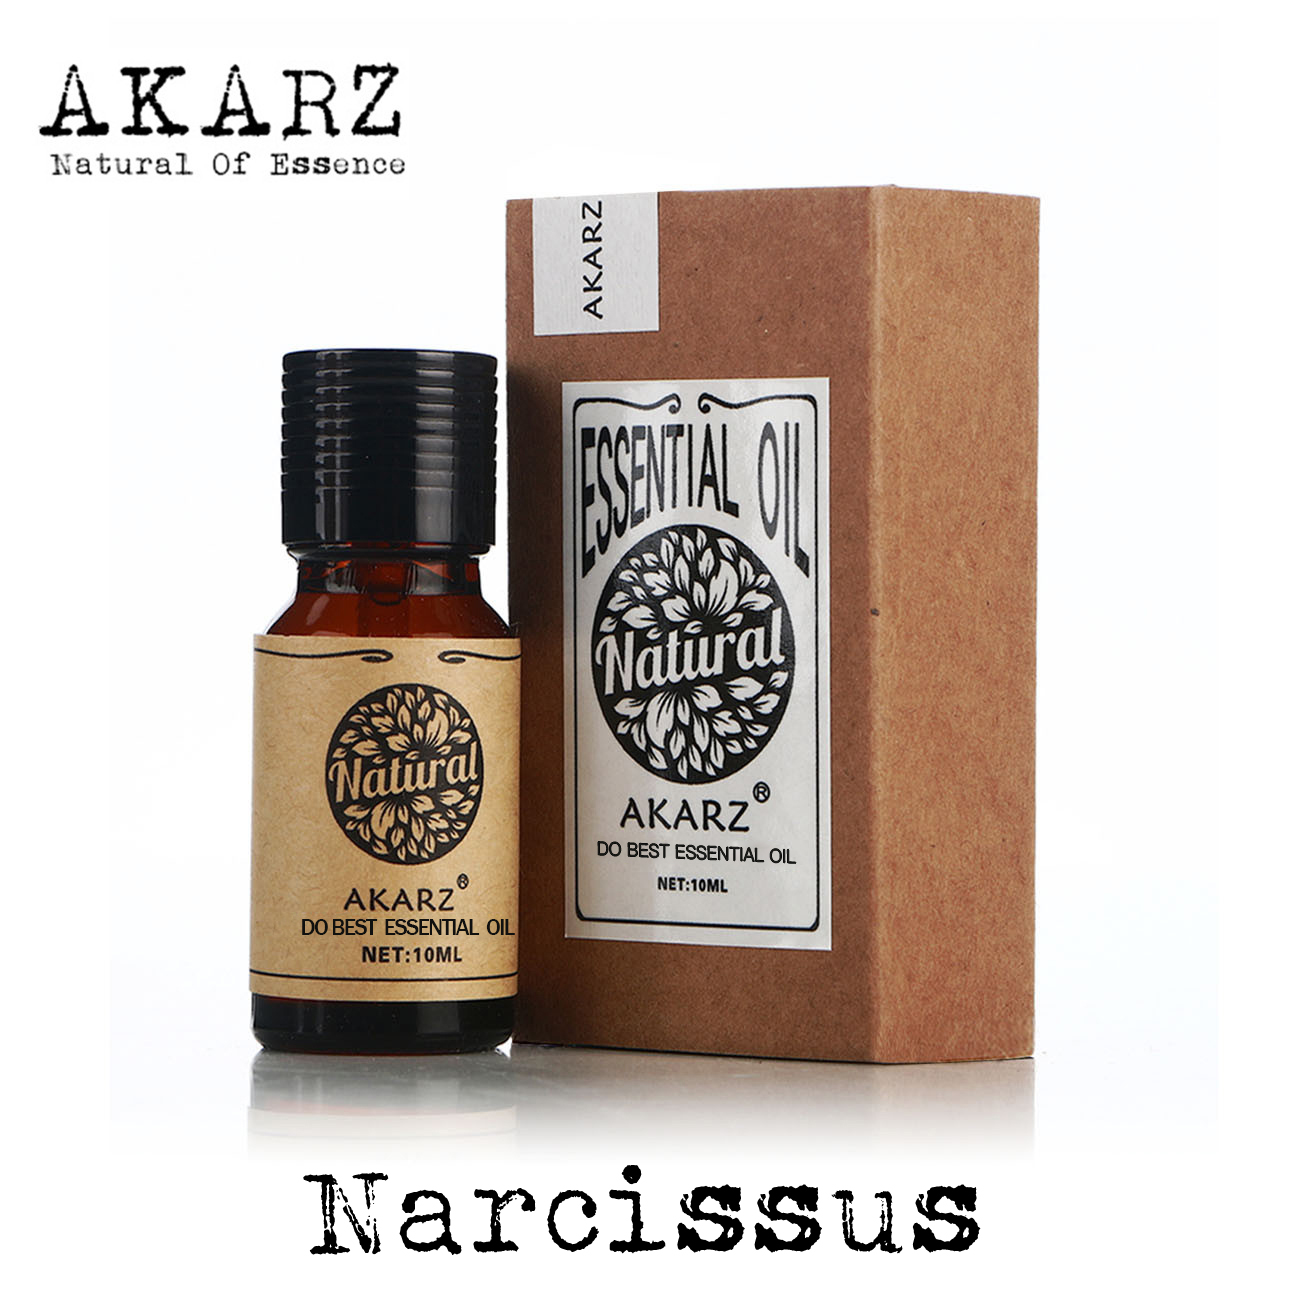 Narcissus essential oil AKARZ brand natural Oiliness Cosmetics Candle Soap Scents Making DIY odorant raw material Narcissus oil